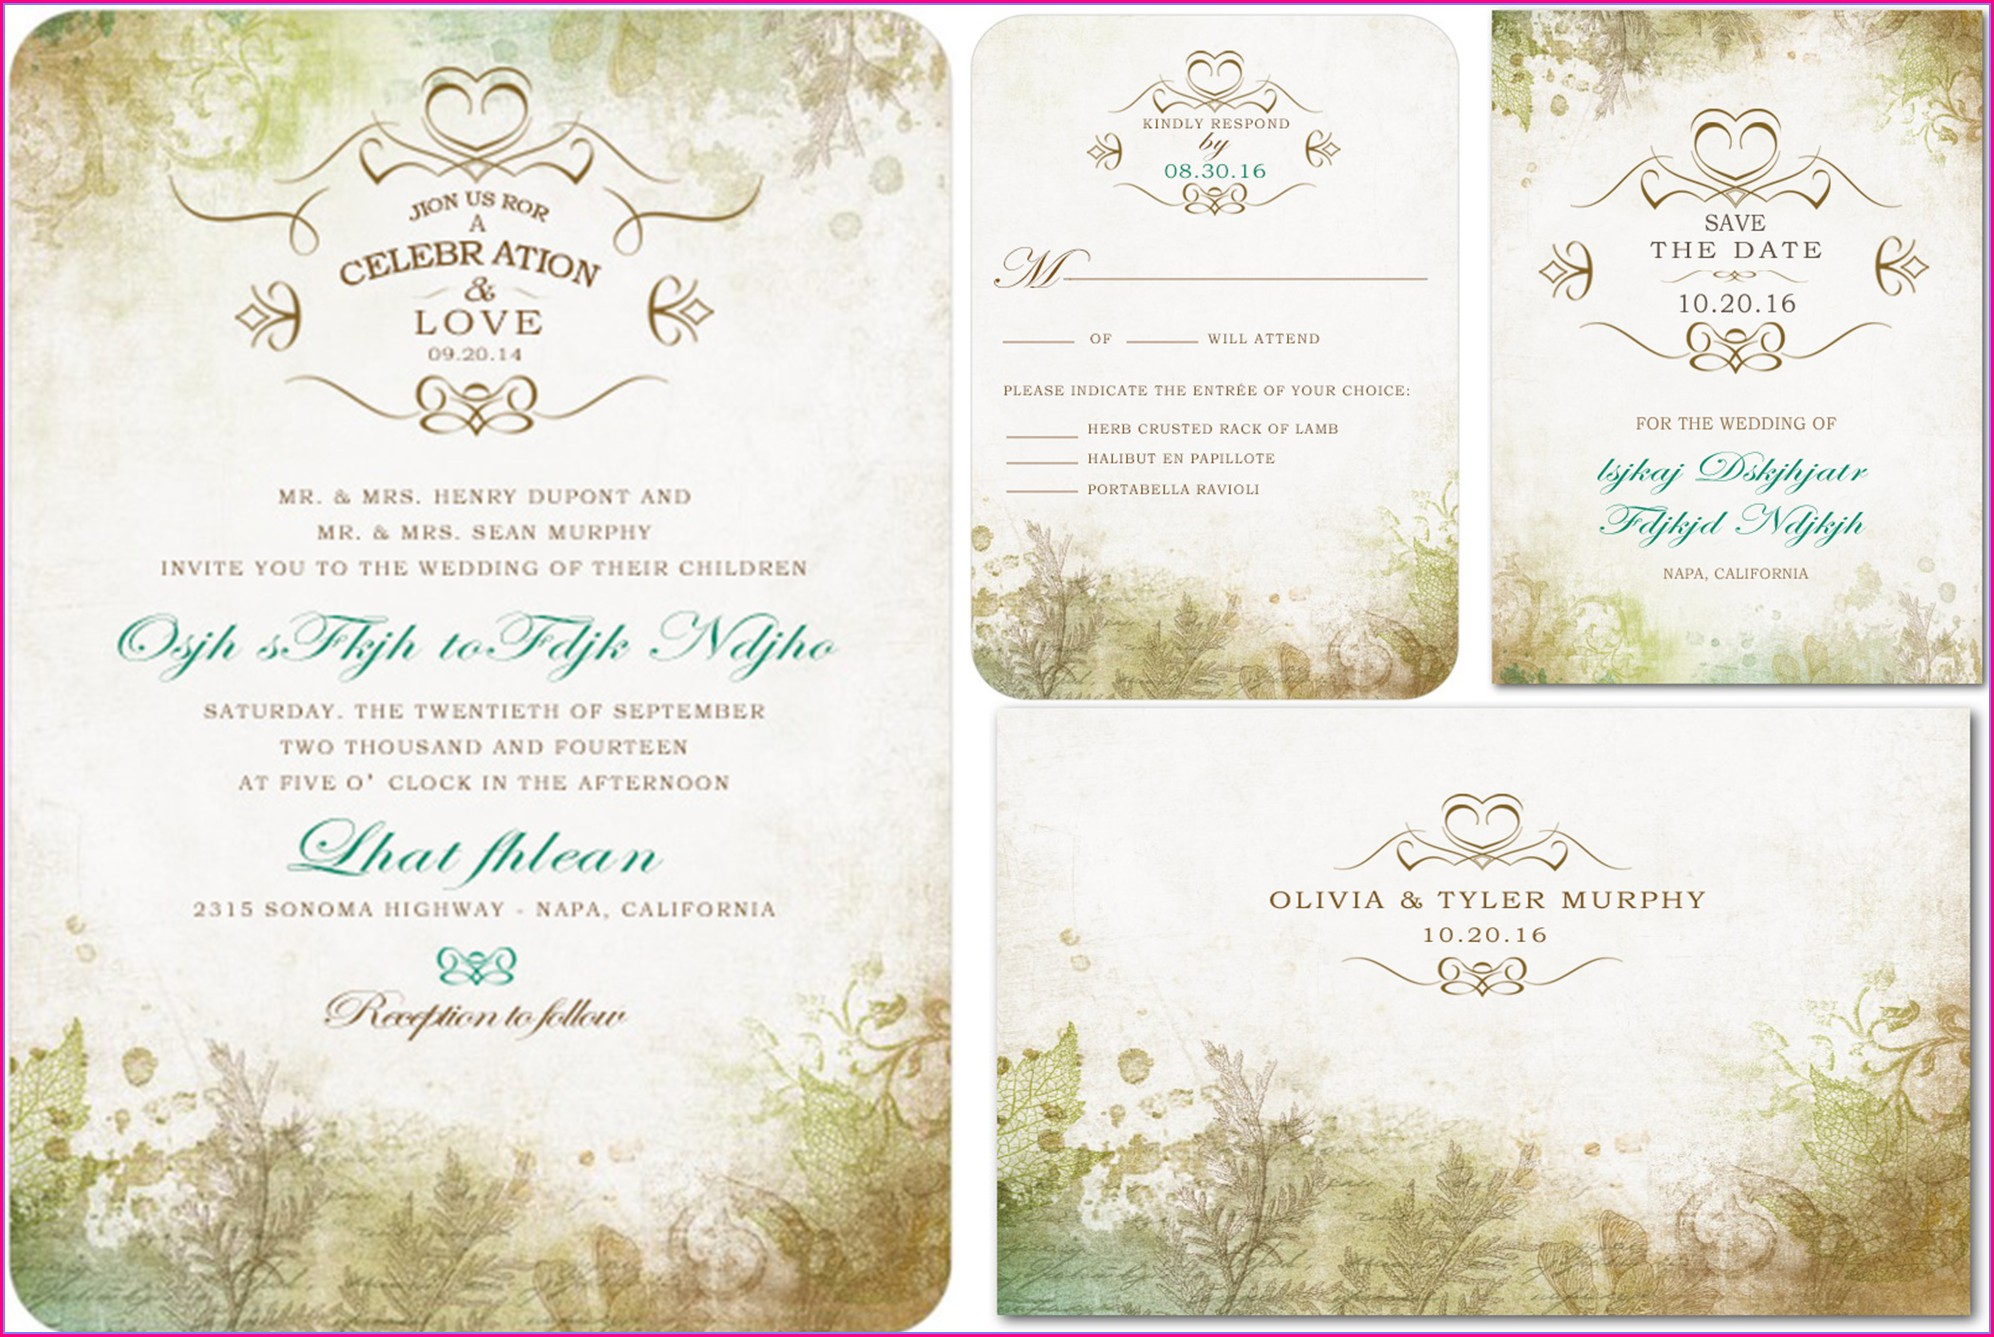 Gay Wedding Invitation Wording